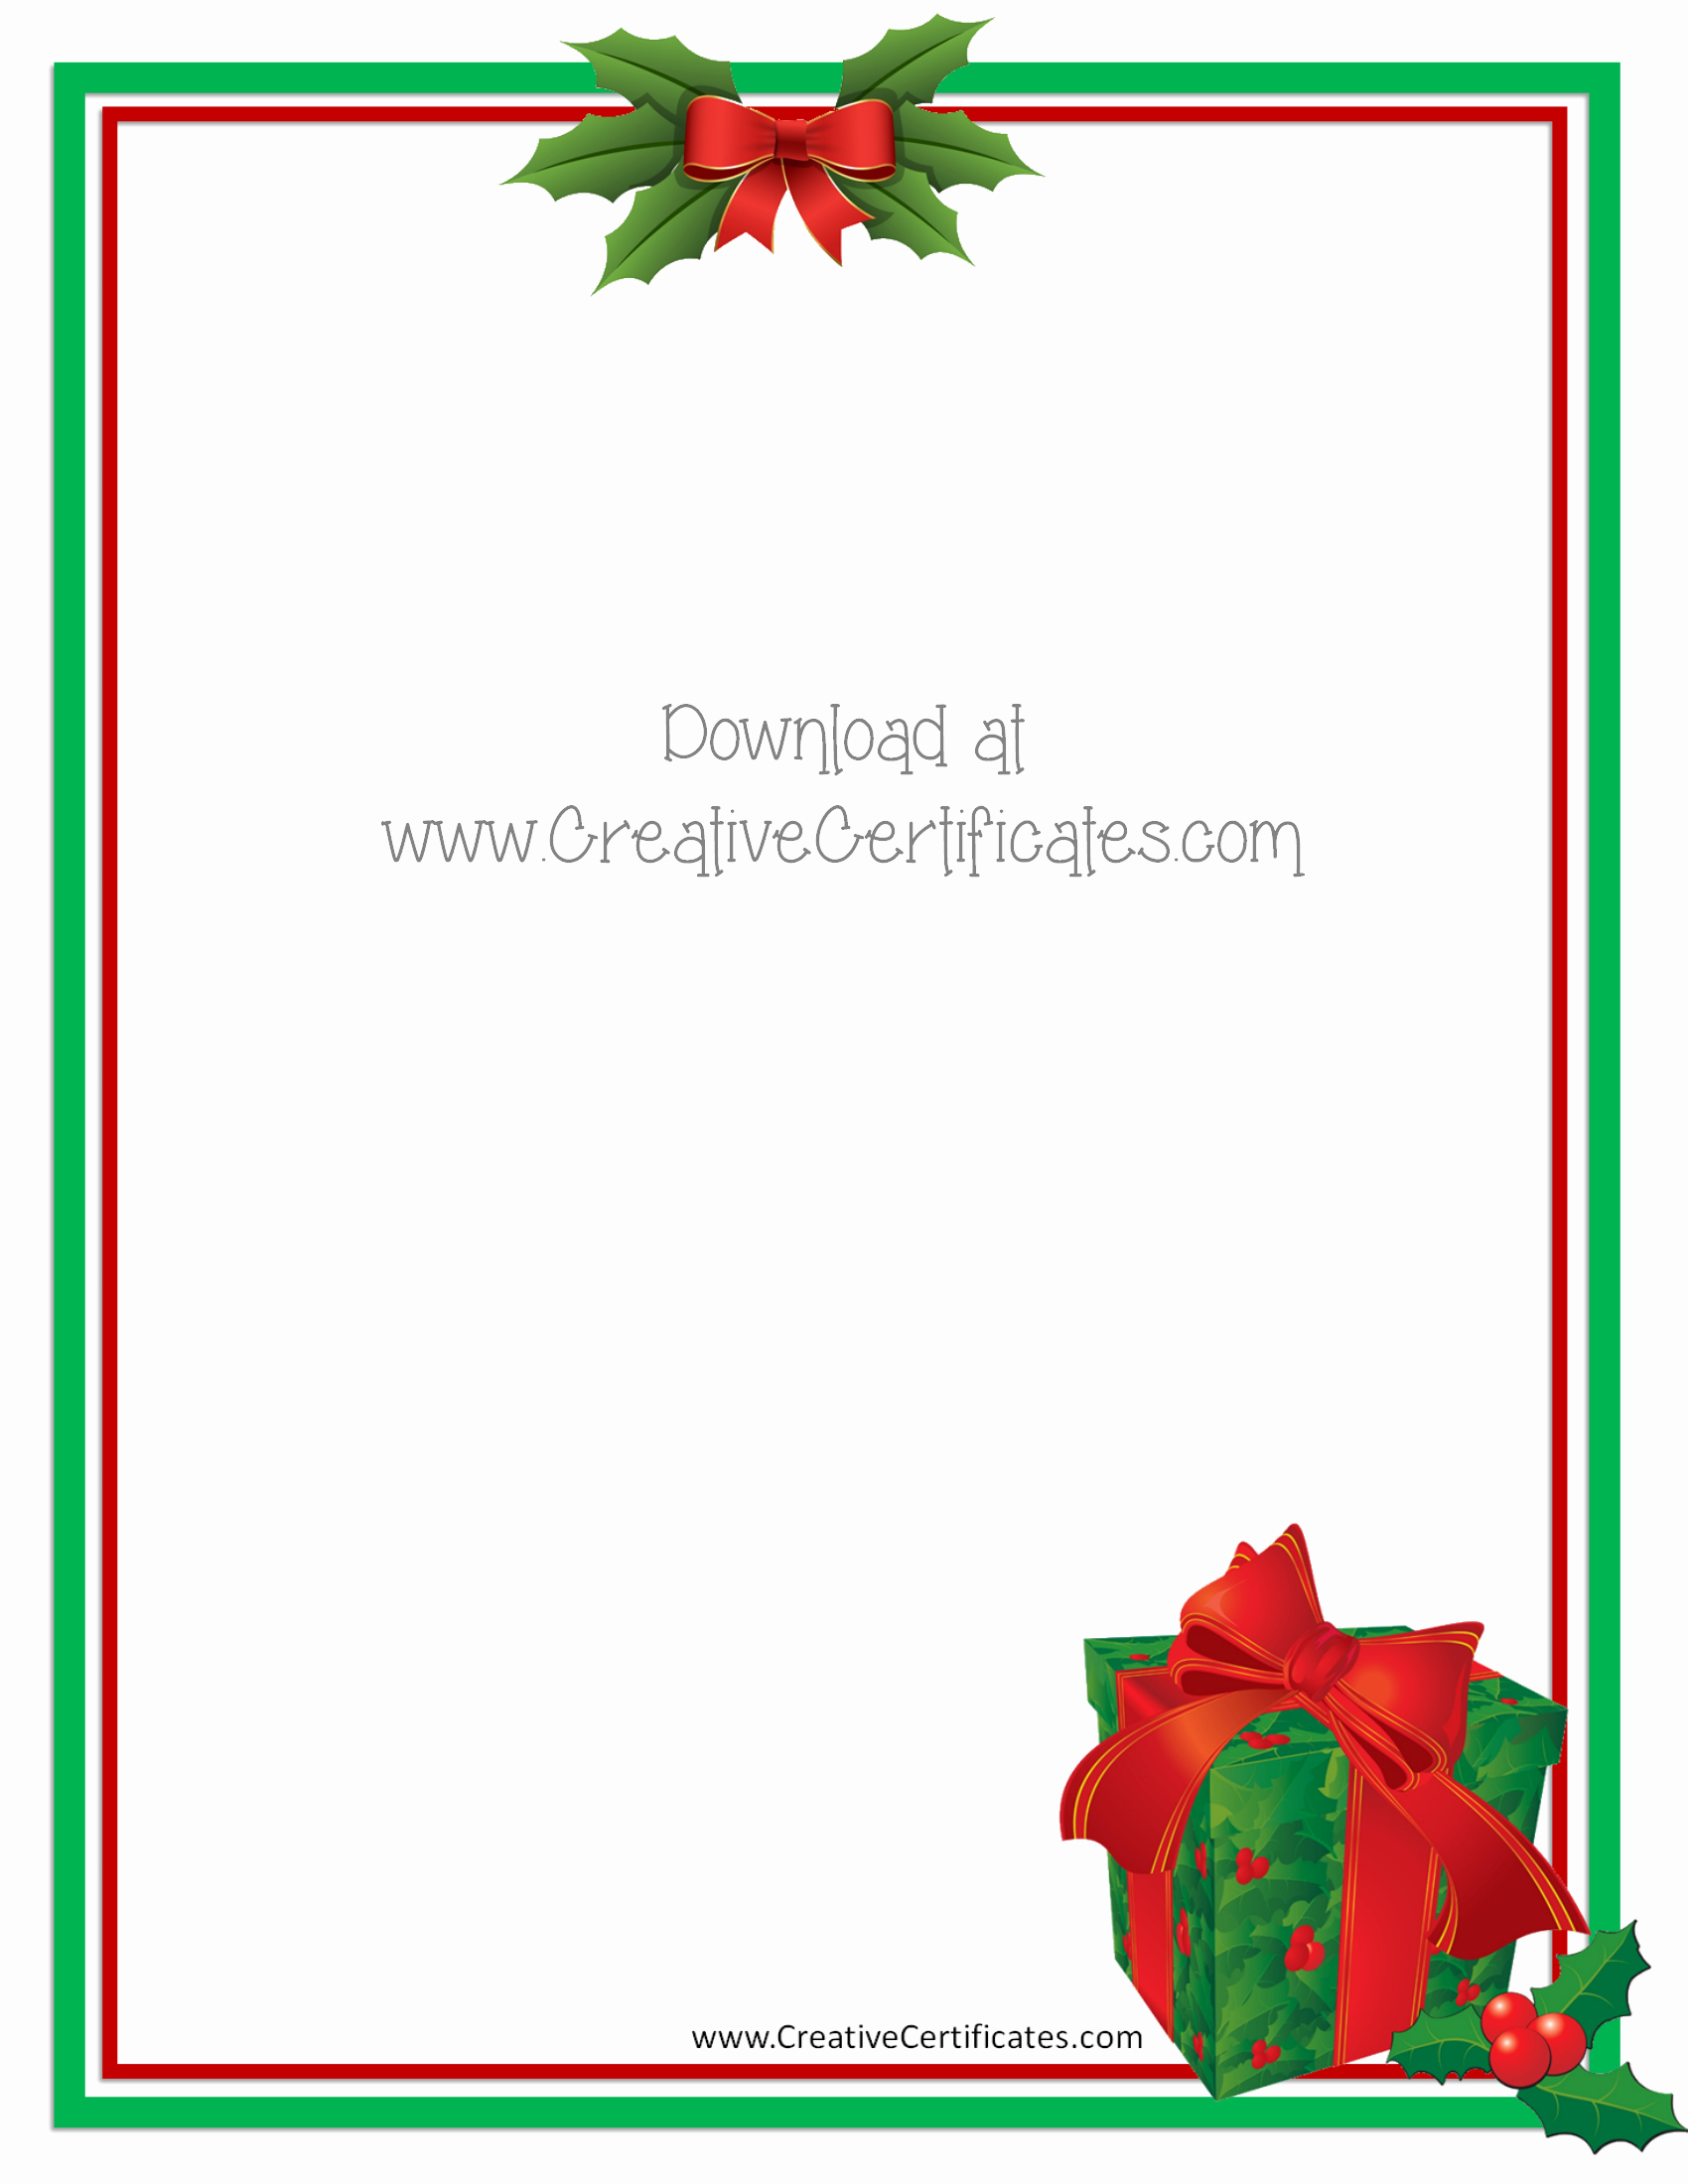 Free Word Document Templates Download Fresh Christmas Word Document Template Portablegasgrillweber